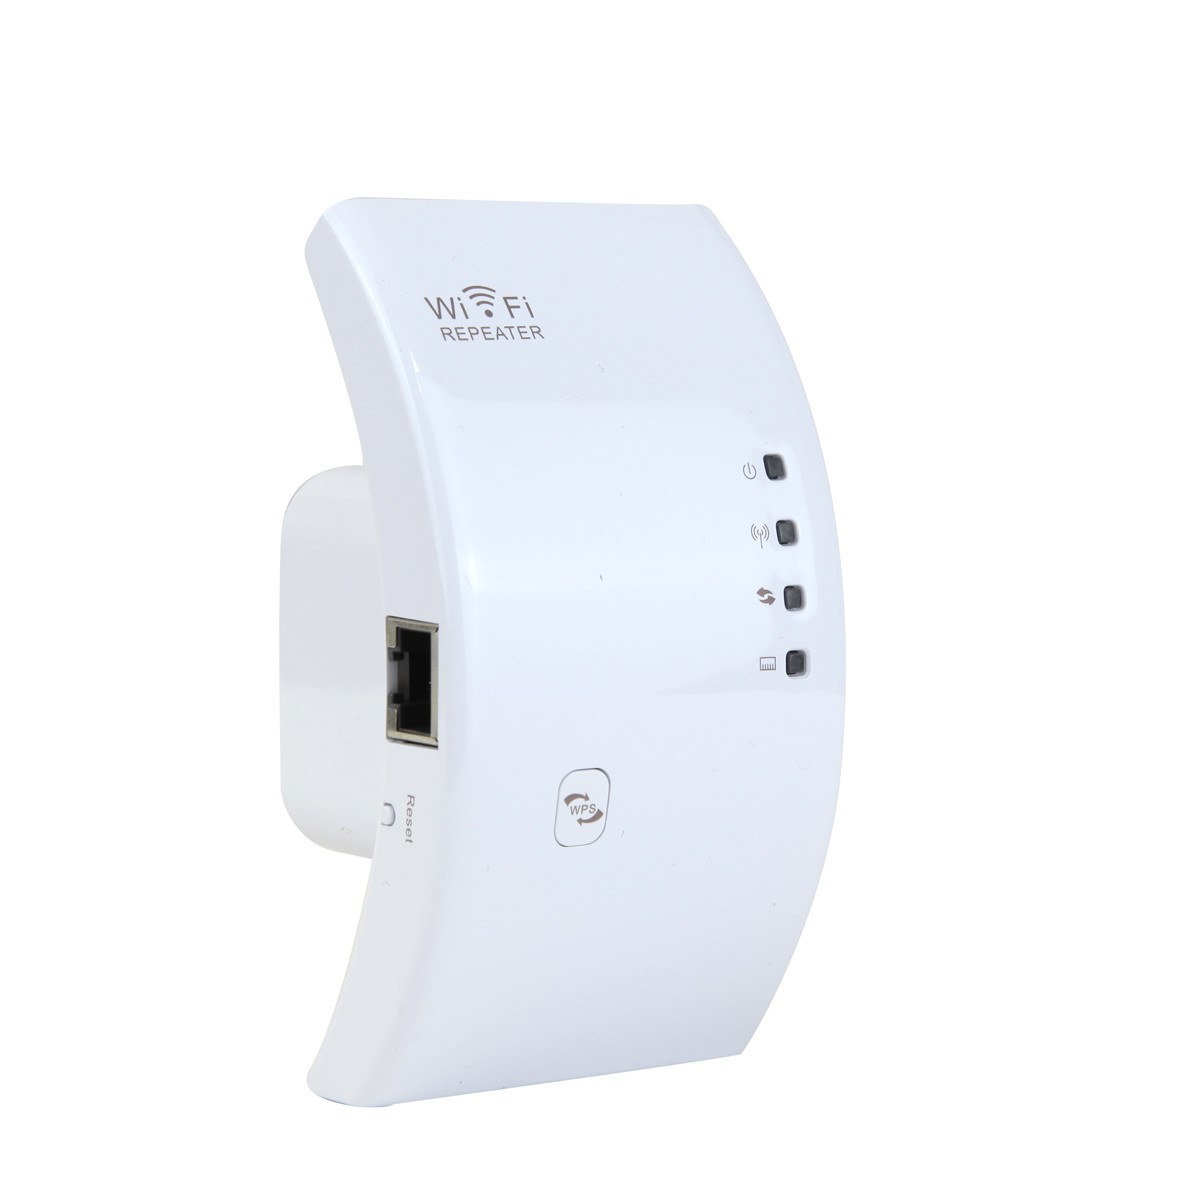 What are wireless access points used for?